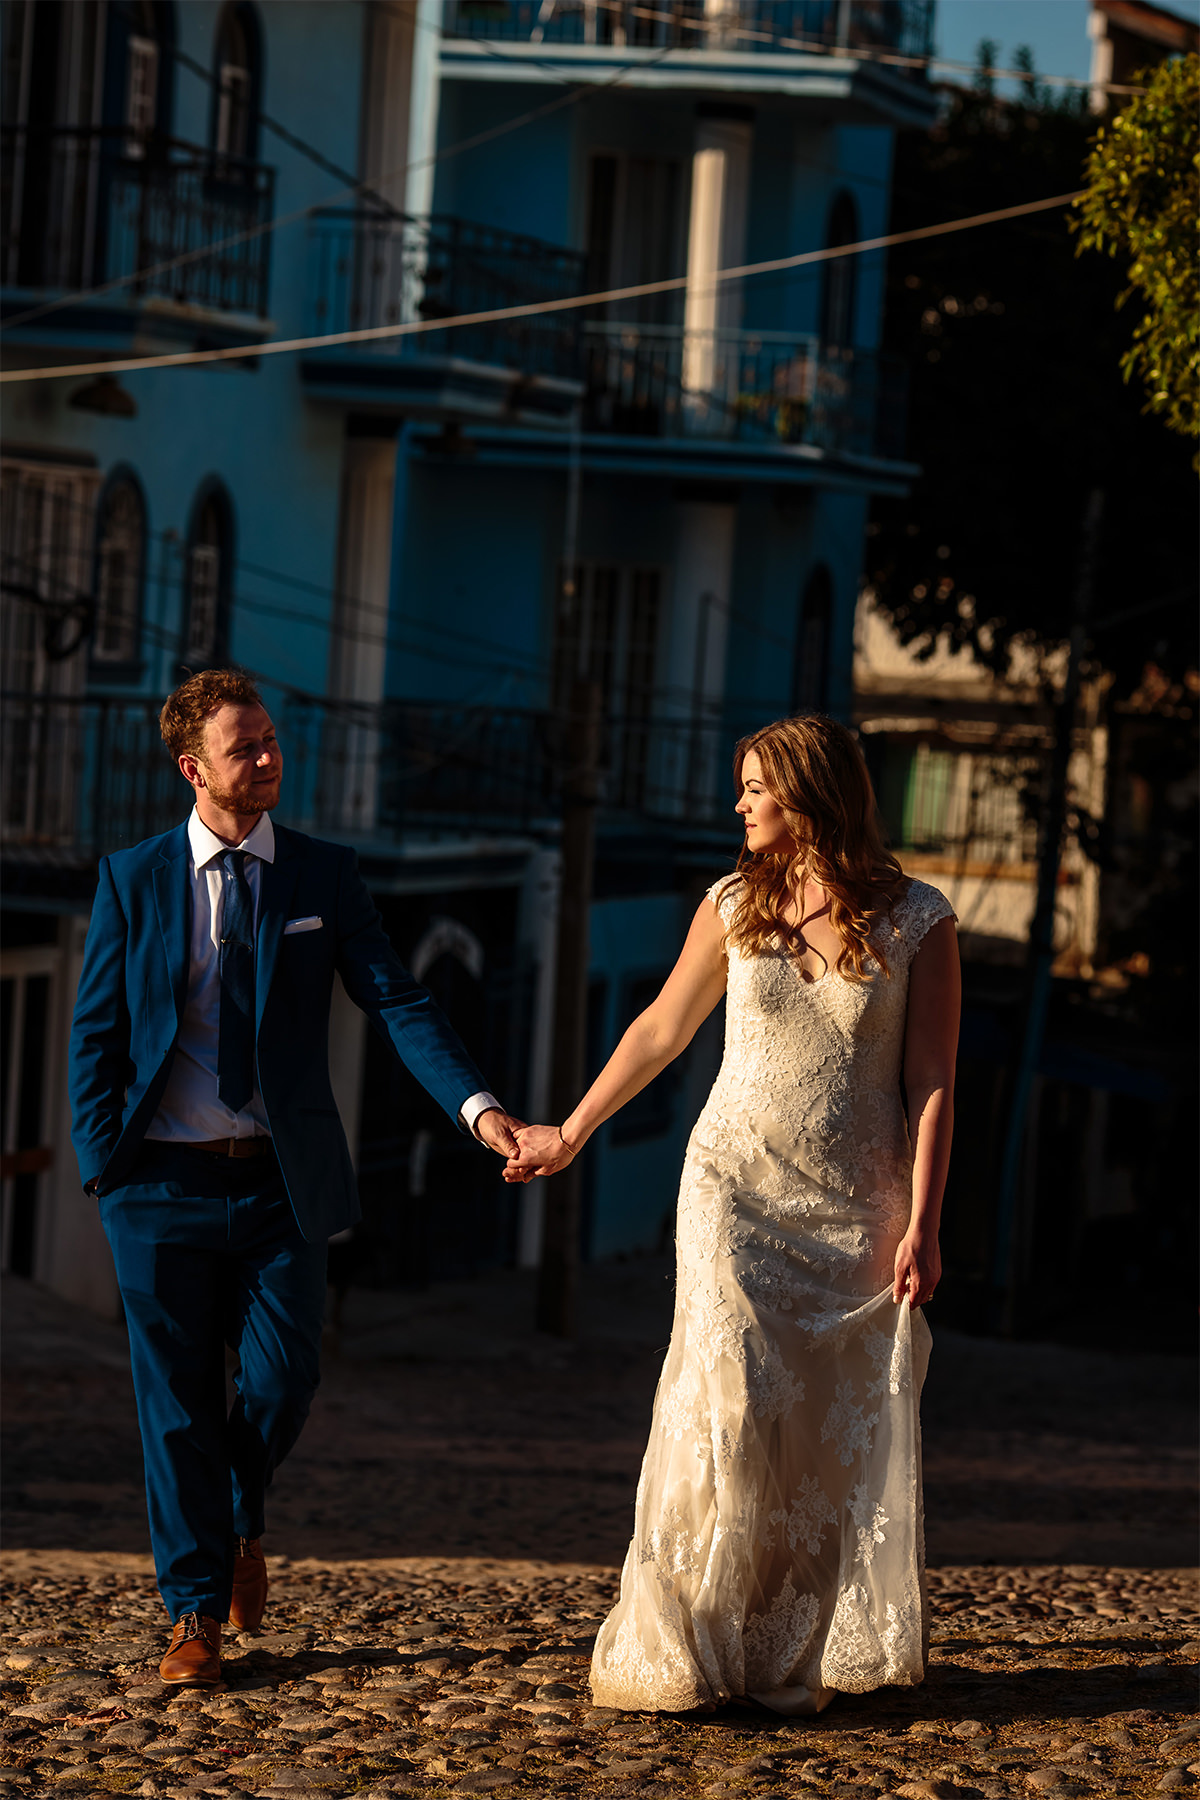 03_Mexico Beach Life Destination Wedding Puerto Vallarta Las Caletas Trash the Dress.jpg